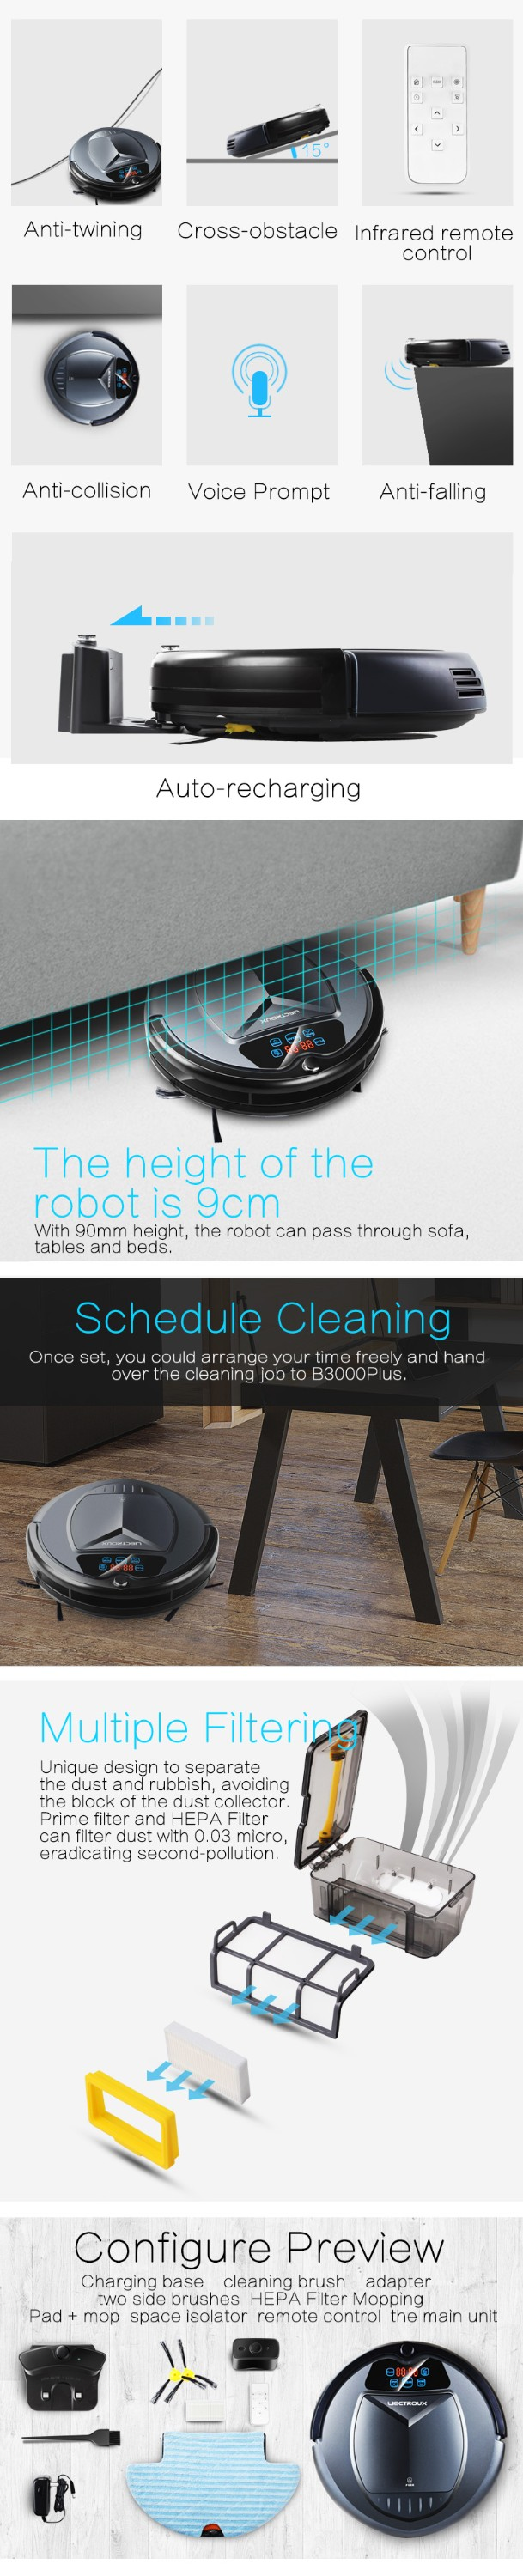 Robot Carpet Cleaner Multifunctional Wet and Dry B3000PLUS